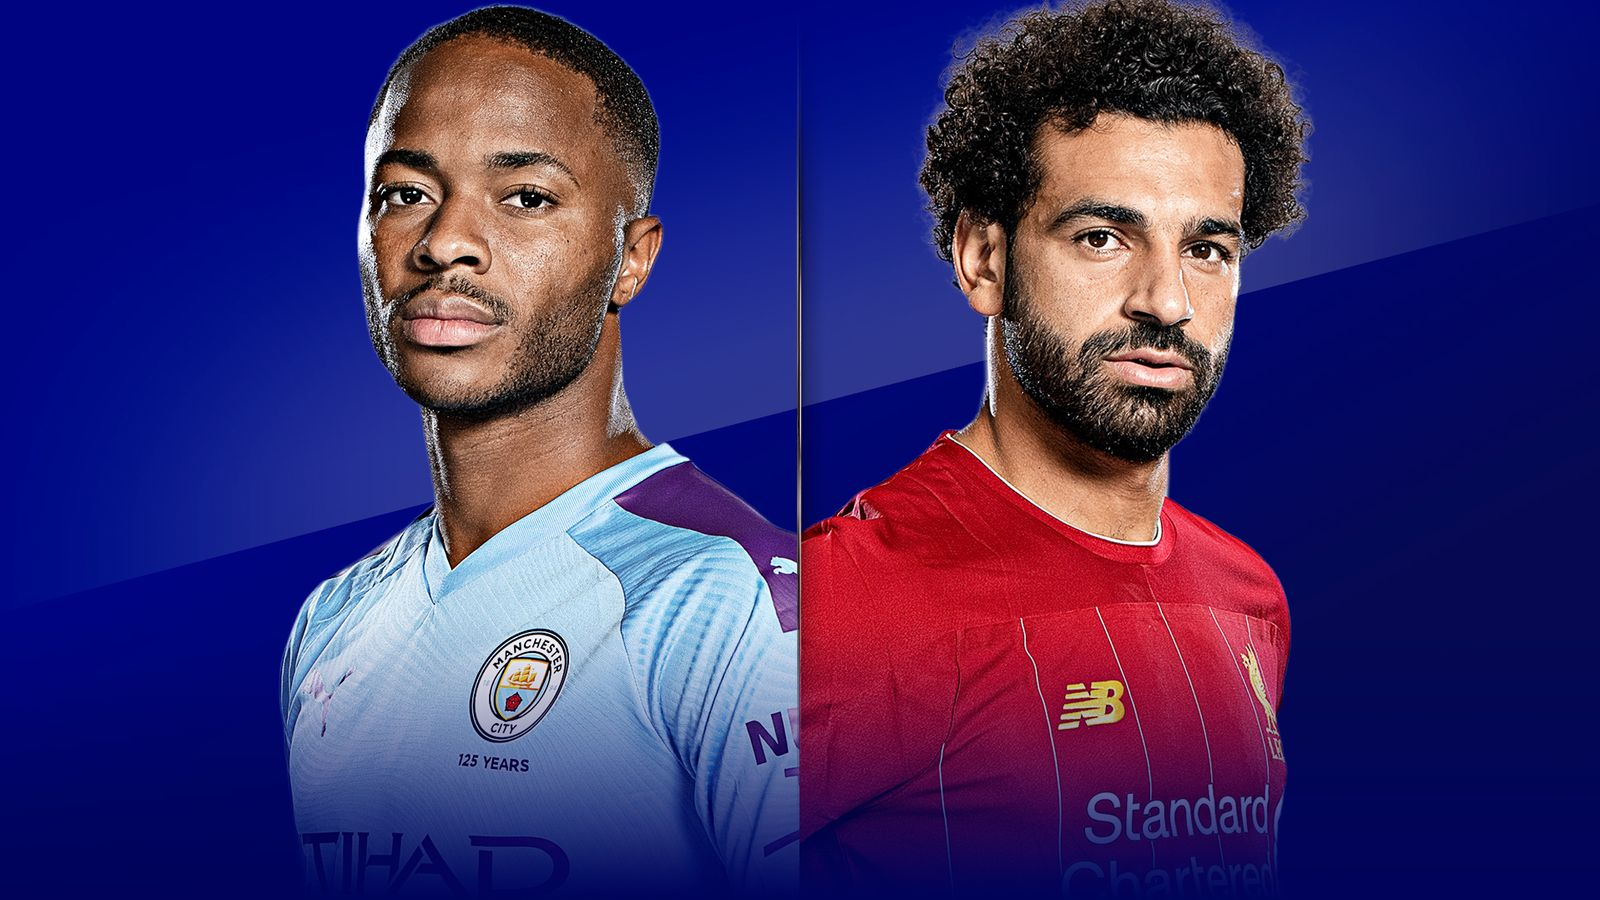 Soi kèo Man City vs Liverpool, 2h15 ngày 3/7